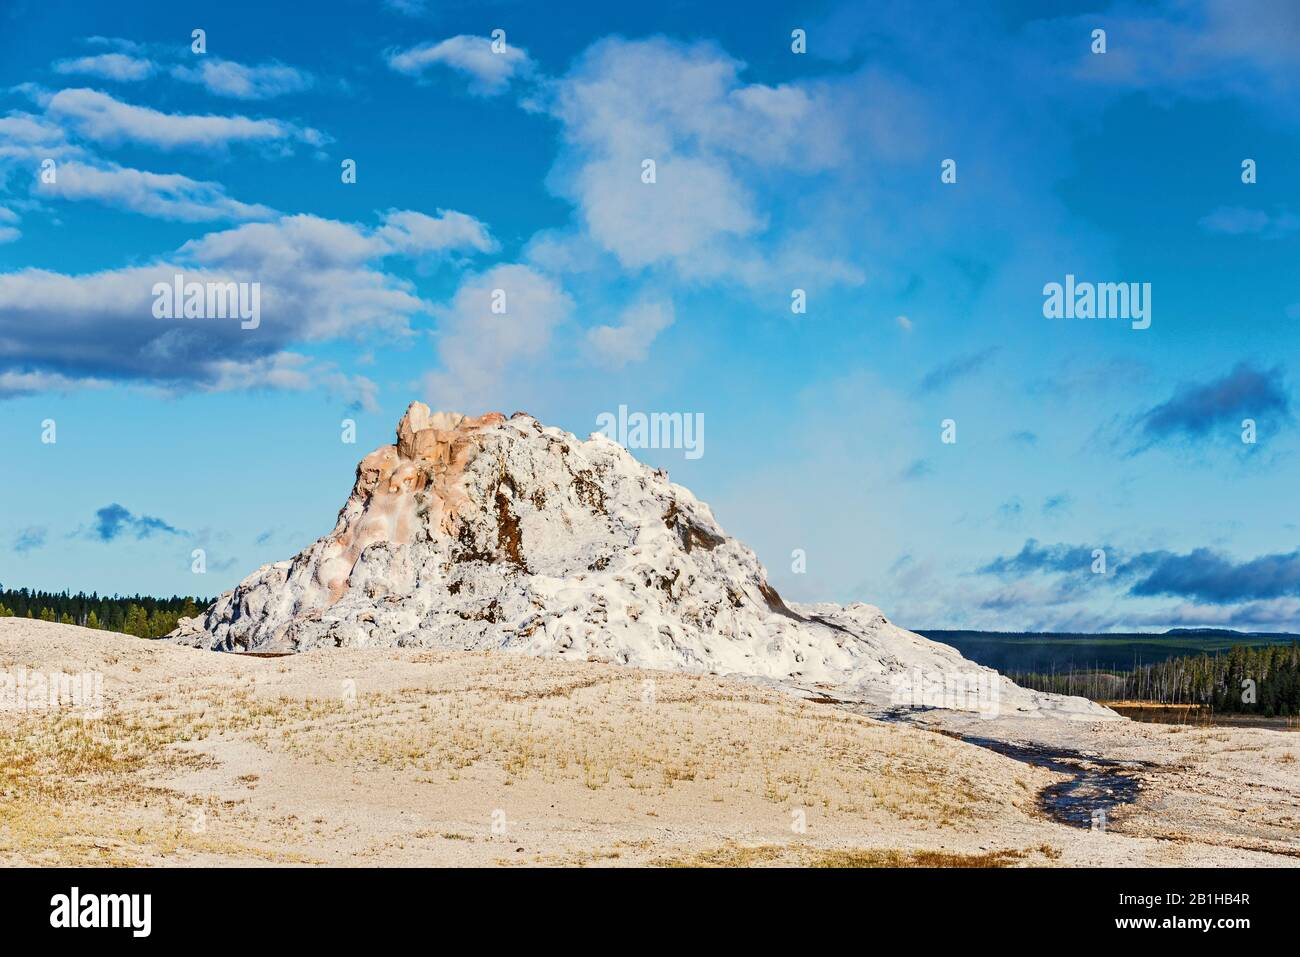 Steaming geyser rock formation against a blue sky with white clouds. Stock Photo